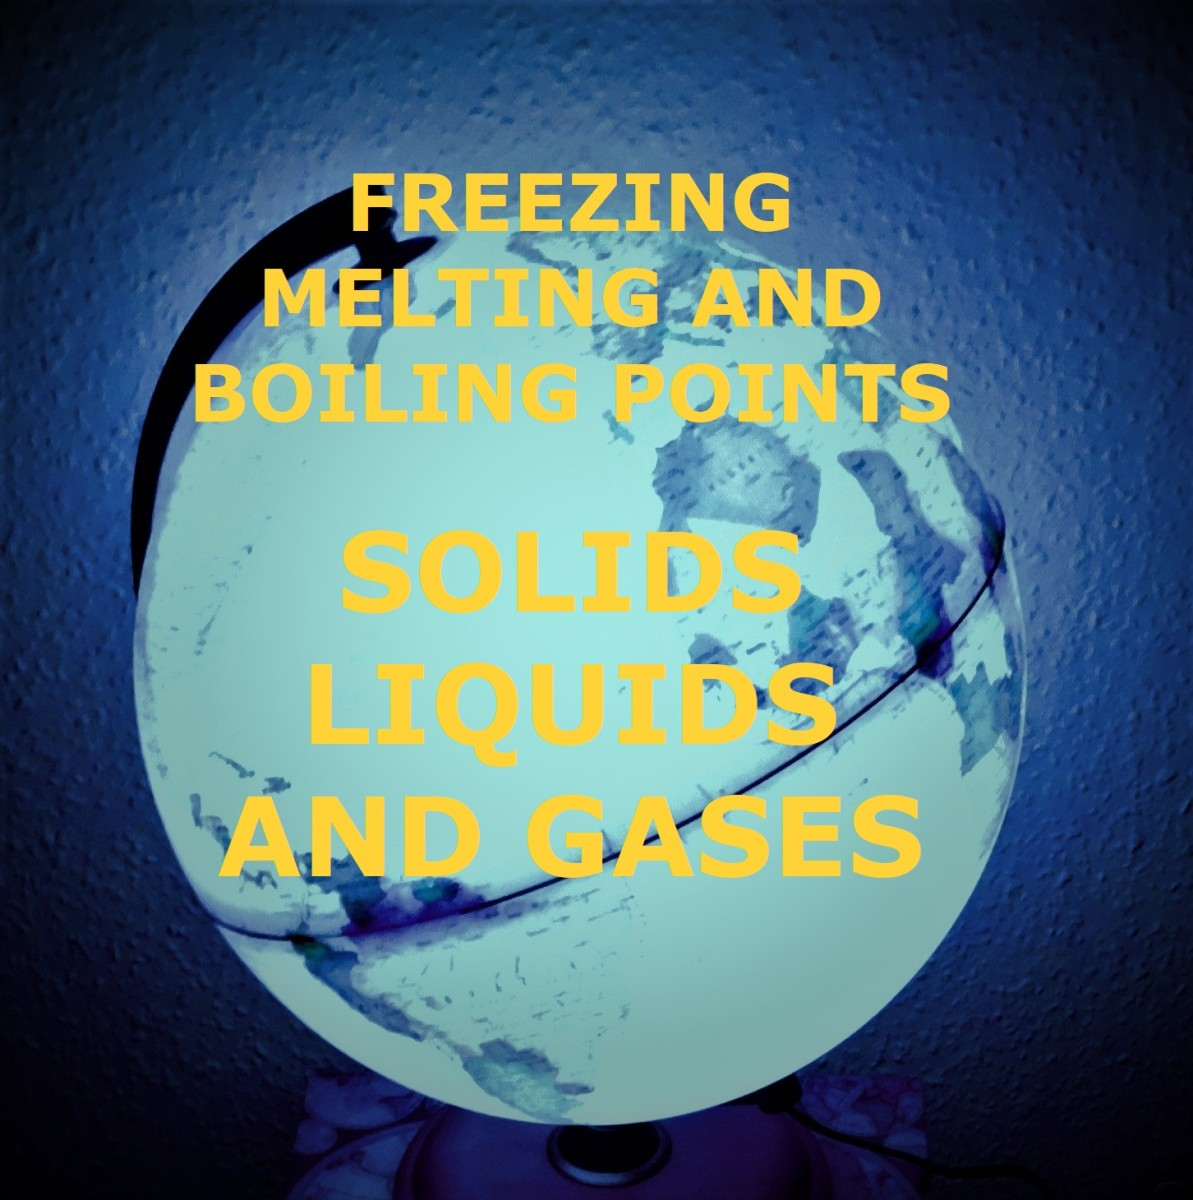 What Are the Freezing, Melting, and Boiling Points of Solids, Liquids, and Gases?